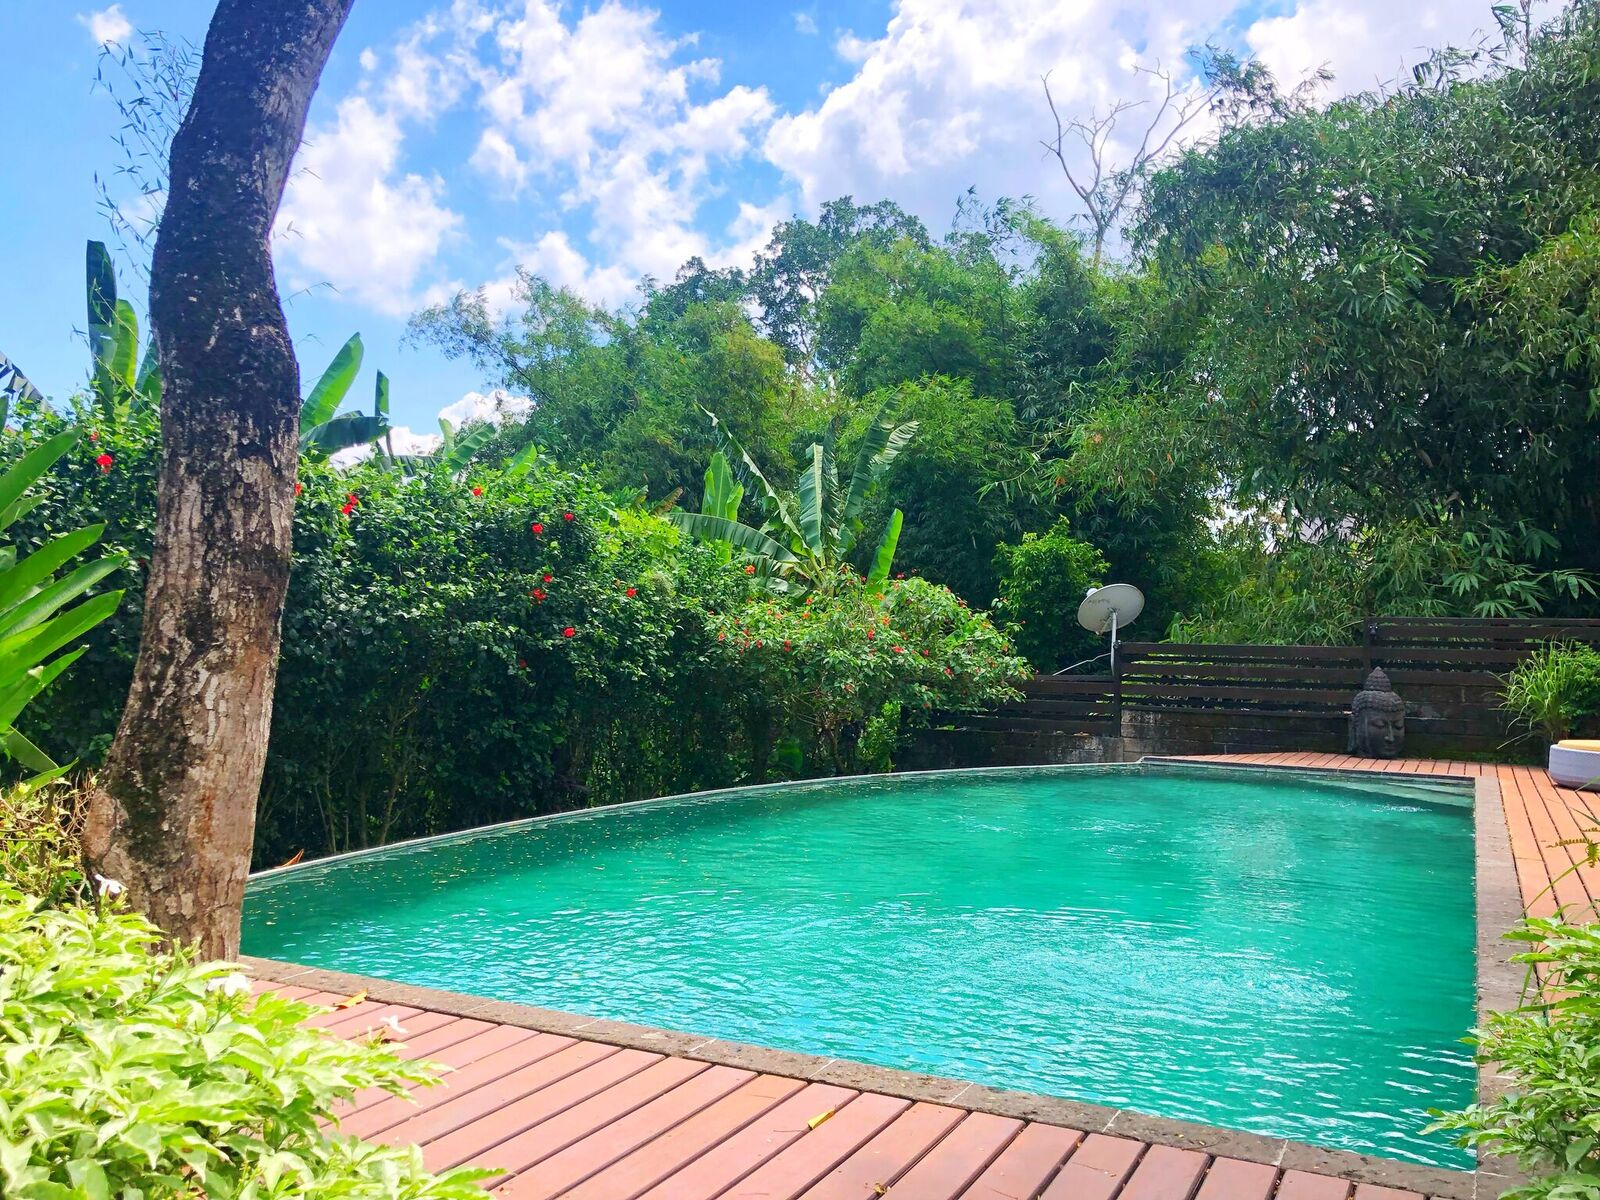 UNIQUE WOODEN VILLA IN A PEACEFUL SURROUNDING IN CANGGU (24 YEARS LEASE)